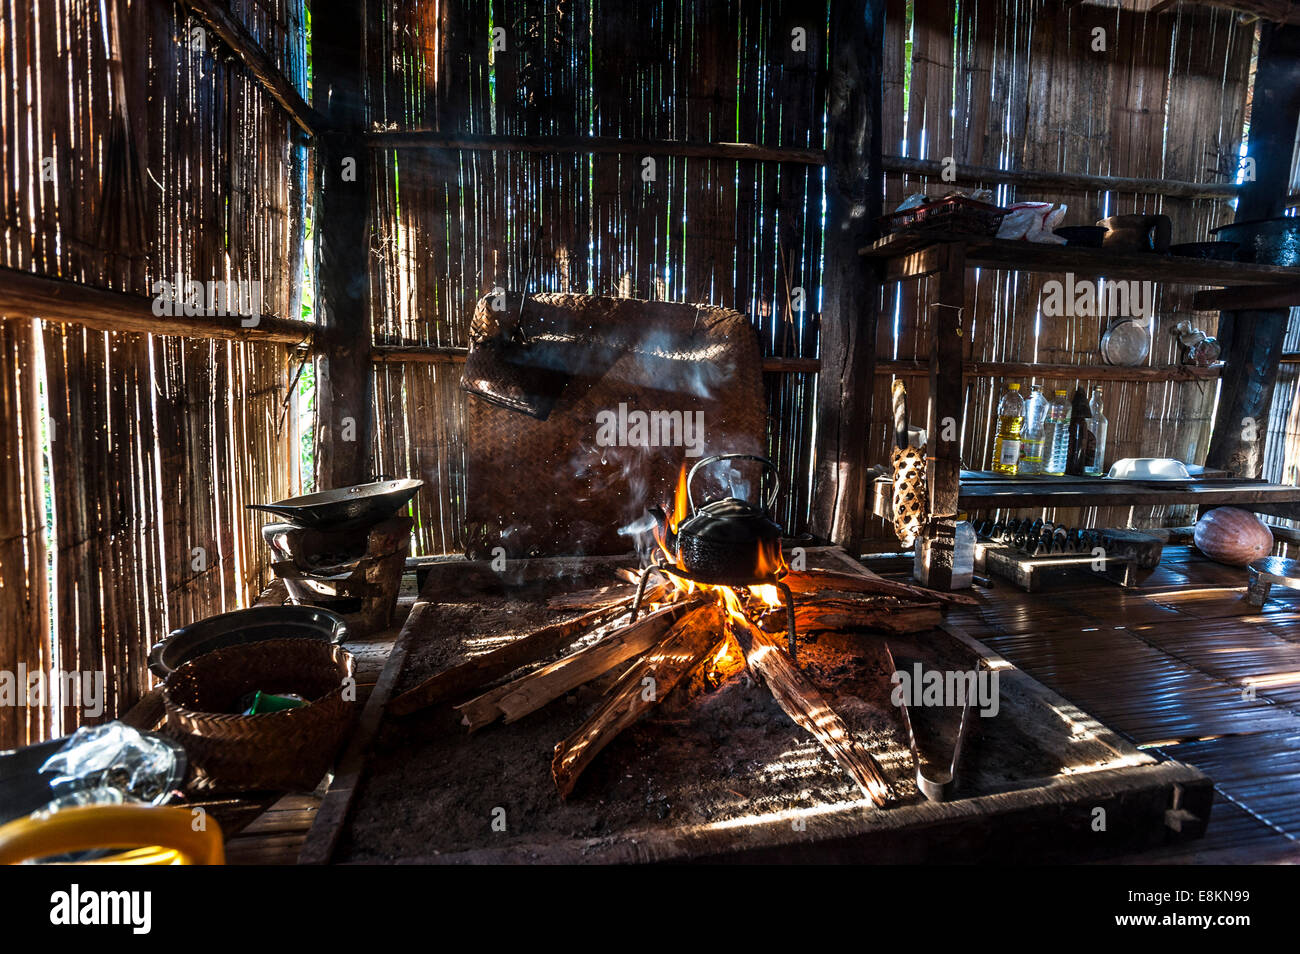 Kettle over an open fire in a kitchen made of bamboo, Lahu village, province of Mae Hong Song, Northern Thailand, - Stock Image